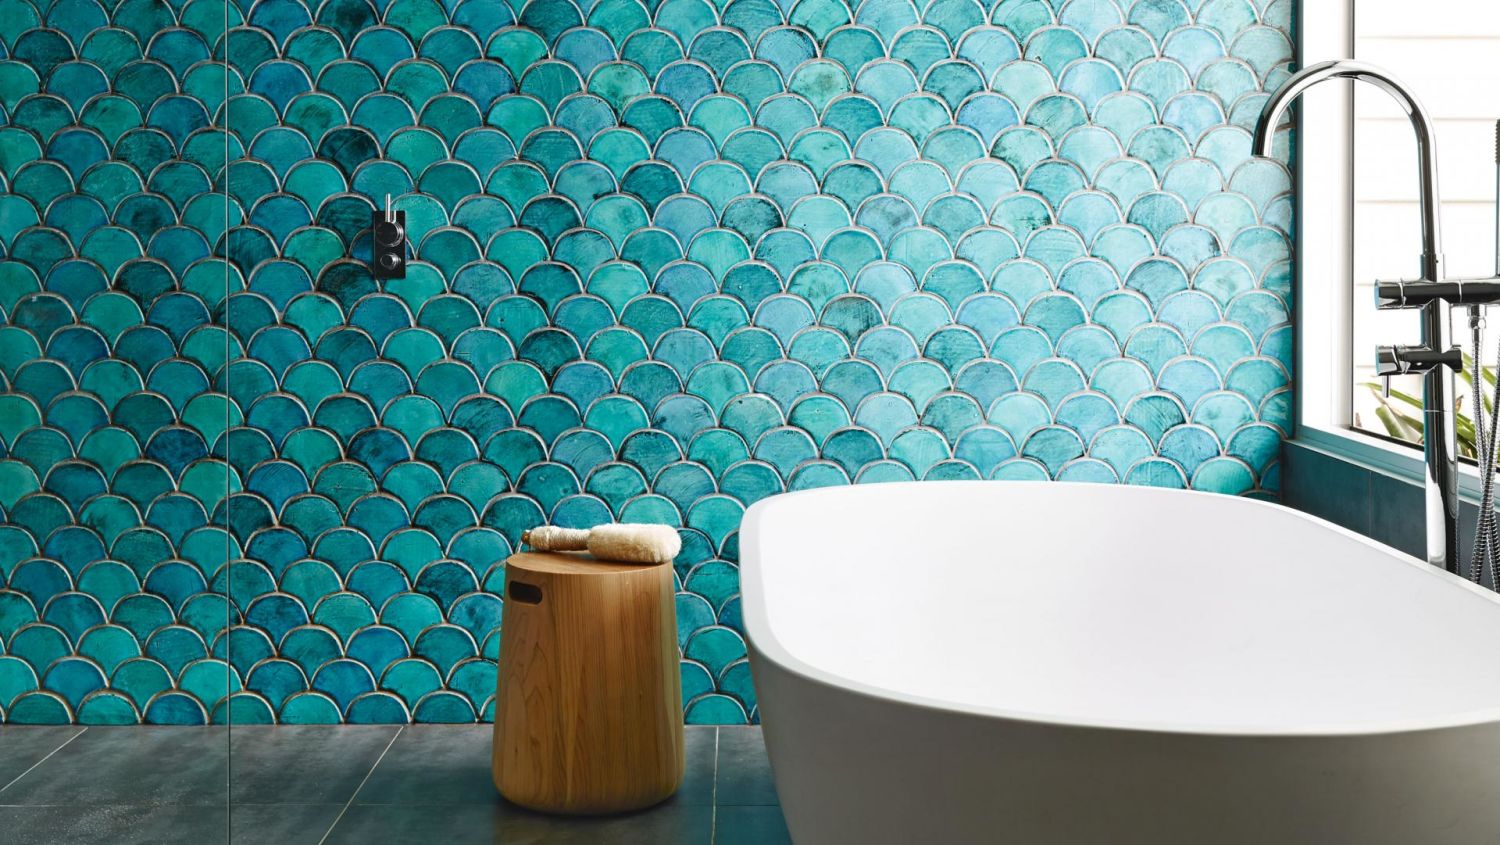 tile best sources for fish scale fan scallop design apartment therapy - Turquoise Floor Tile